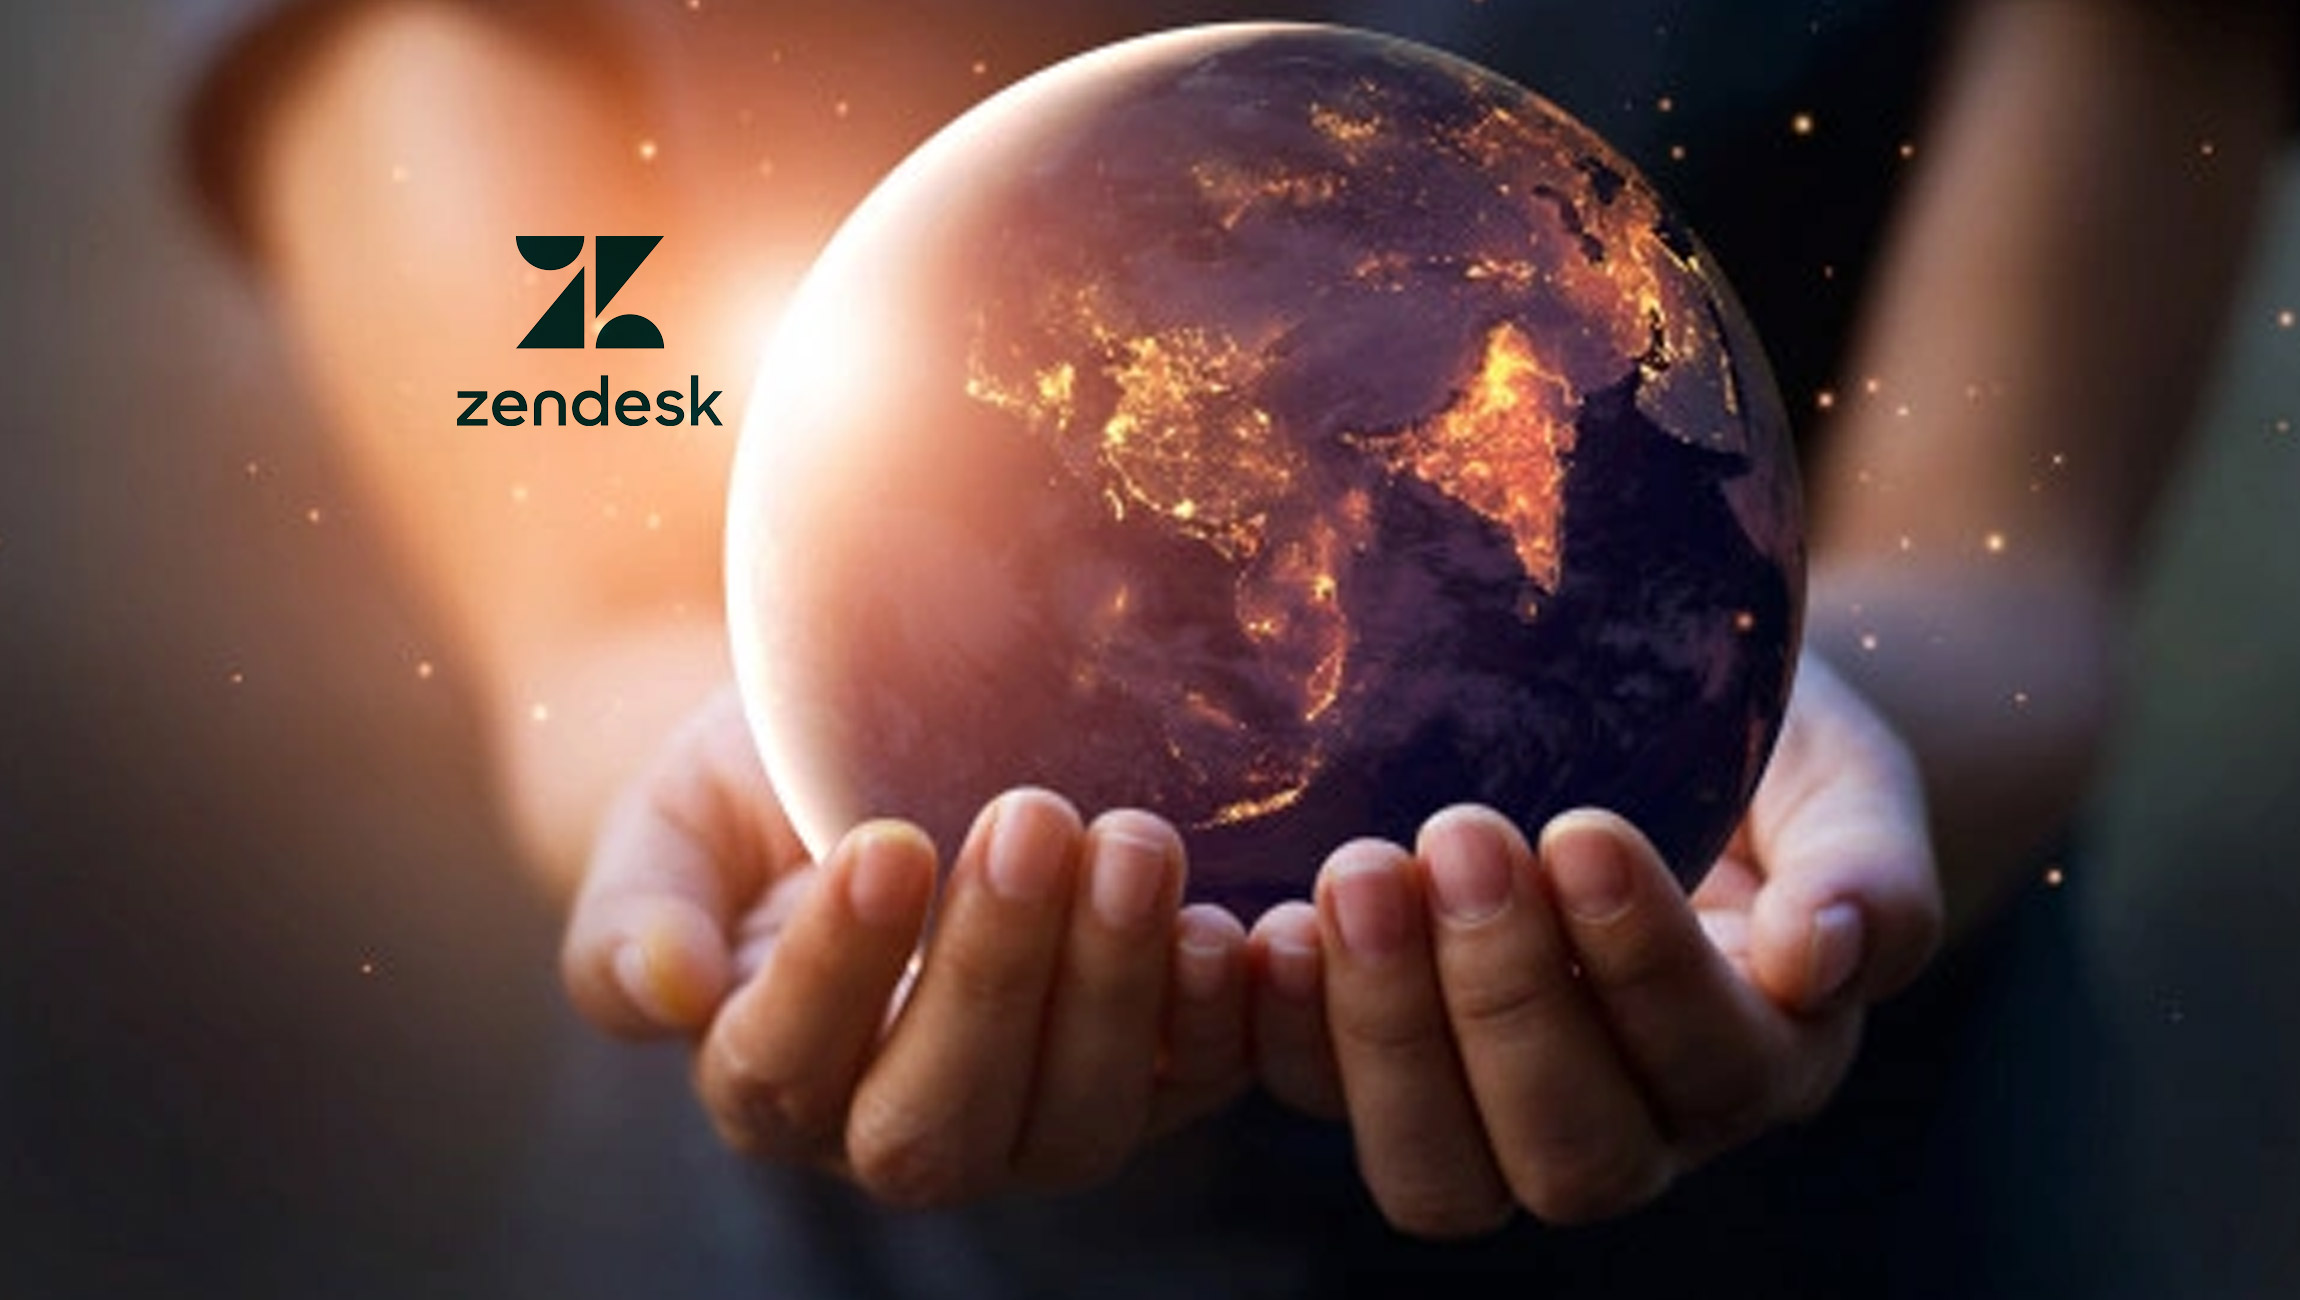 Zendesk Launches Thank You Machine Campaign in APAC to Generate Gratitude this World Gratitude Day